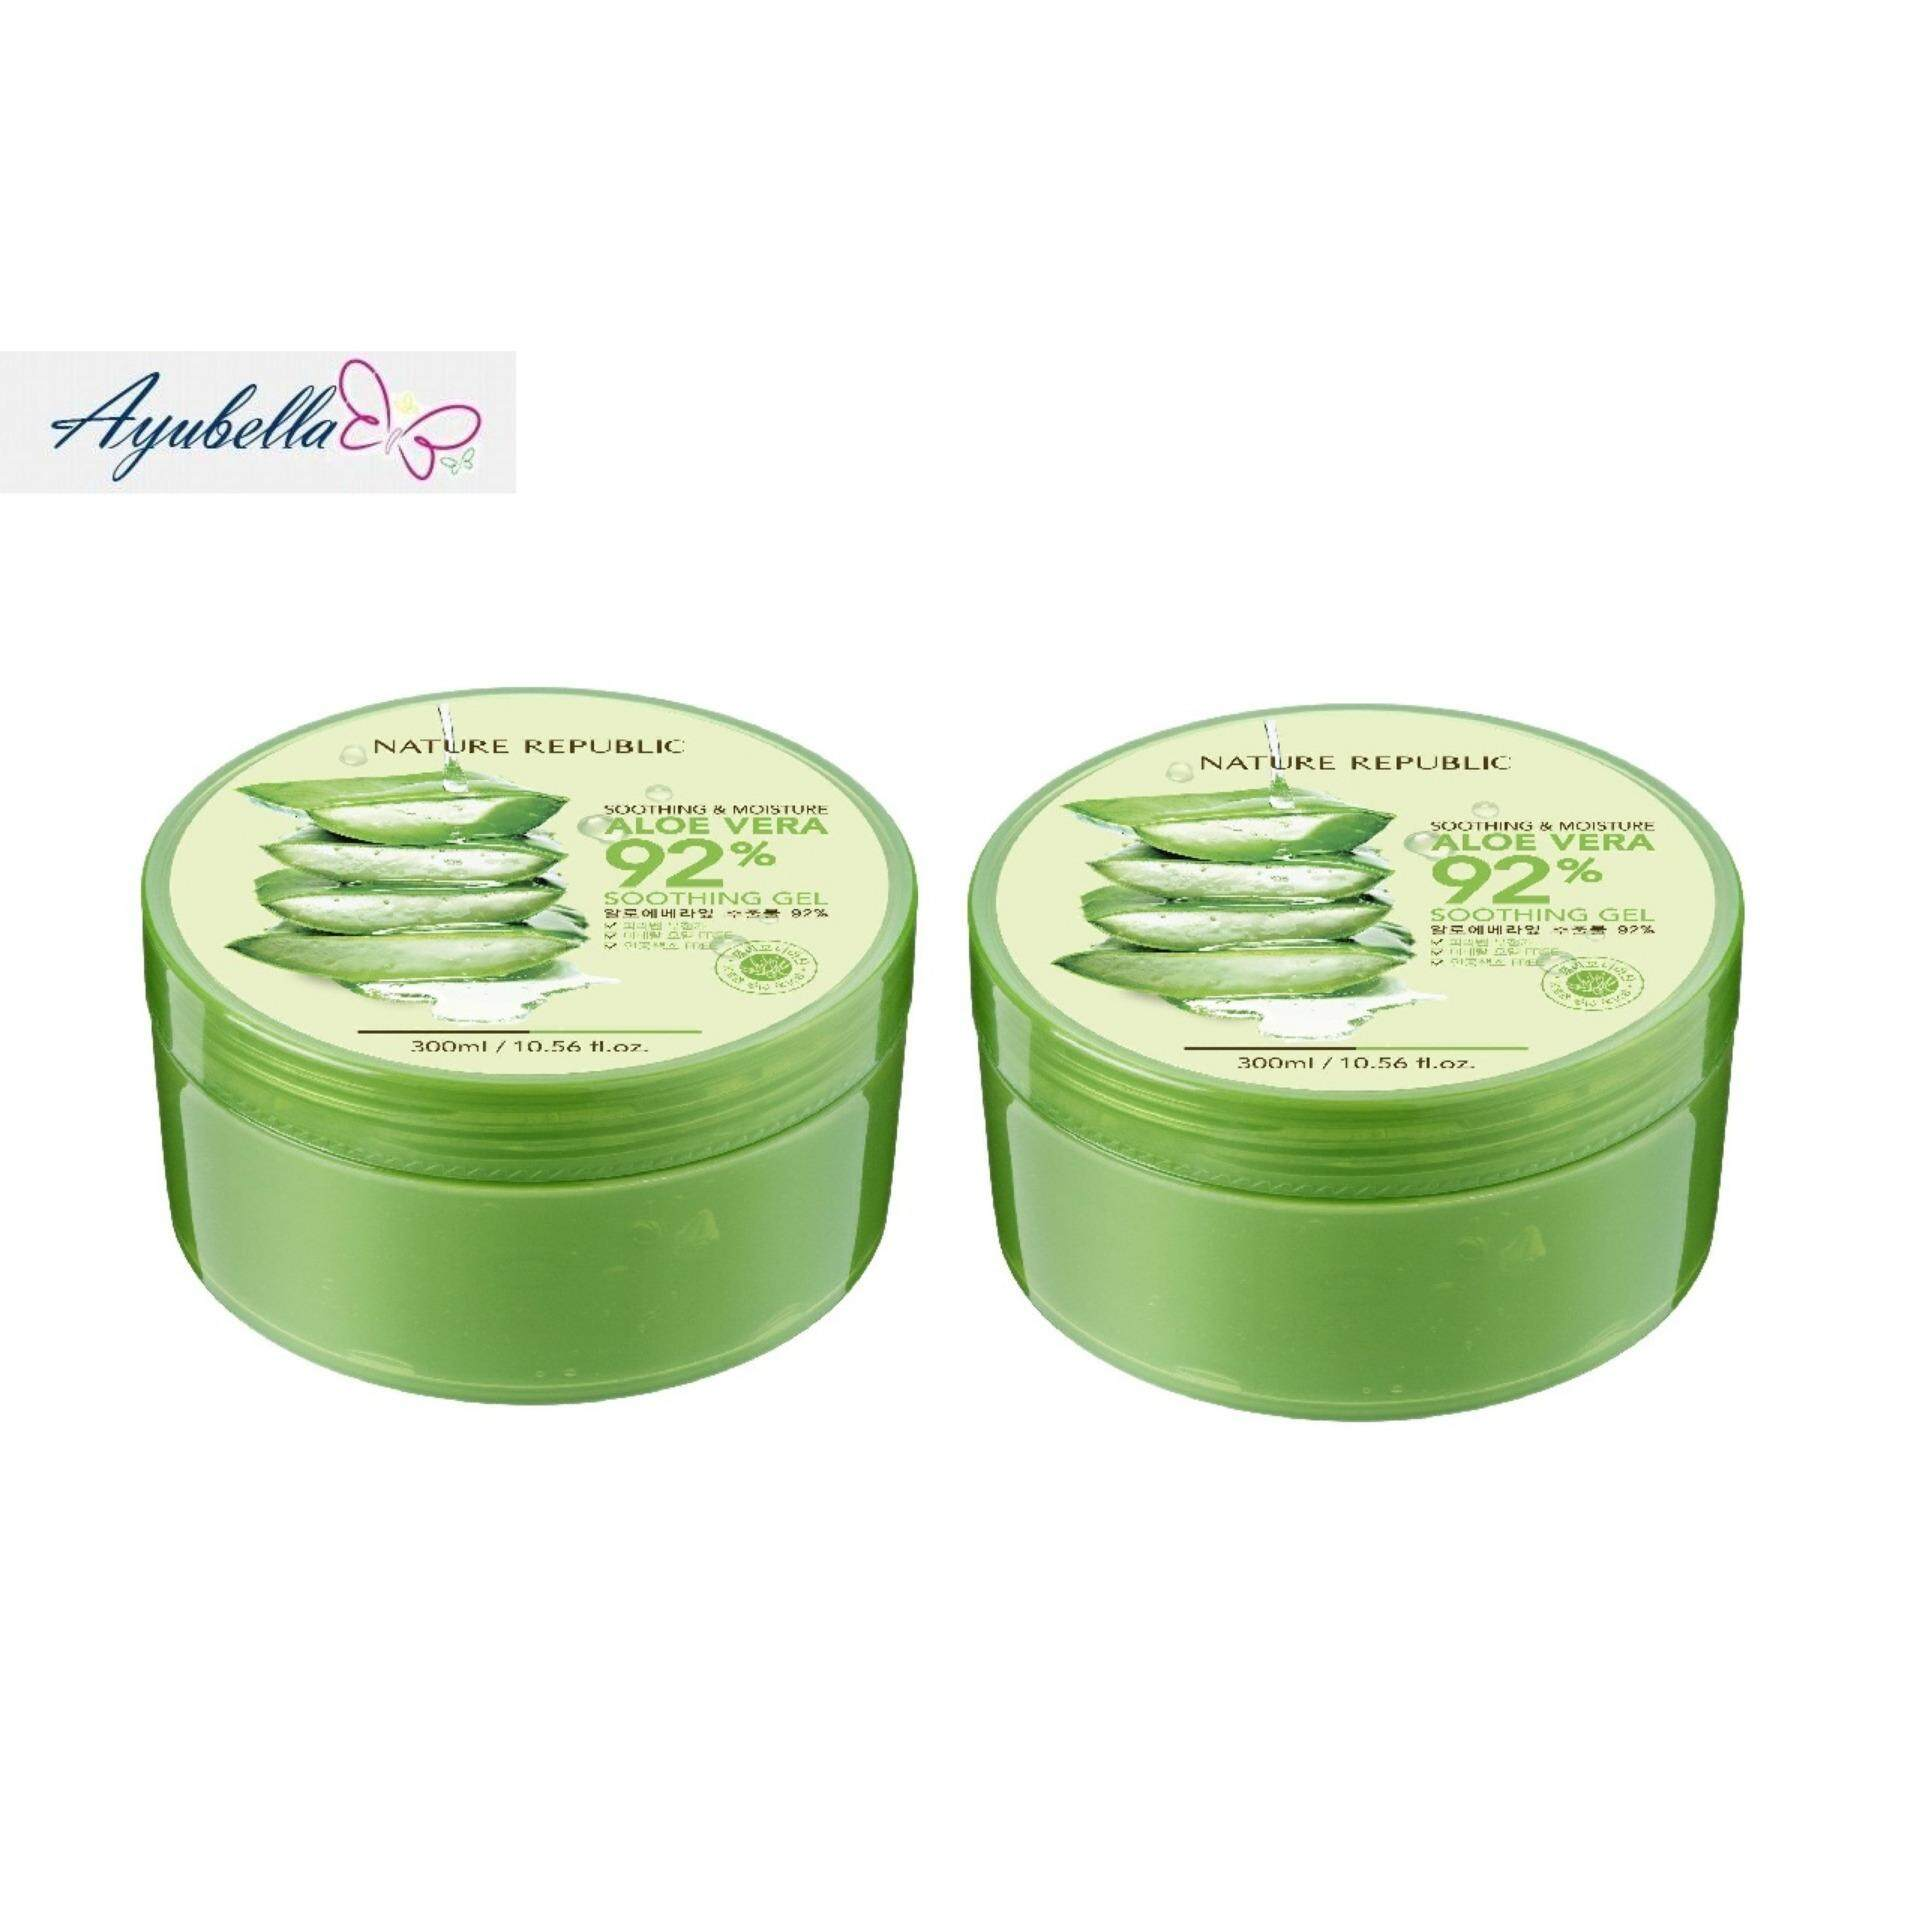 Nature Republic Aloe Vera Soothing Gel 300ml x 2